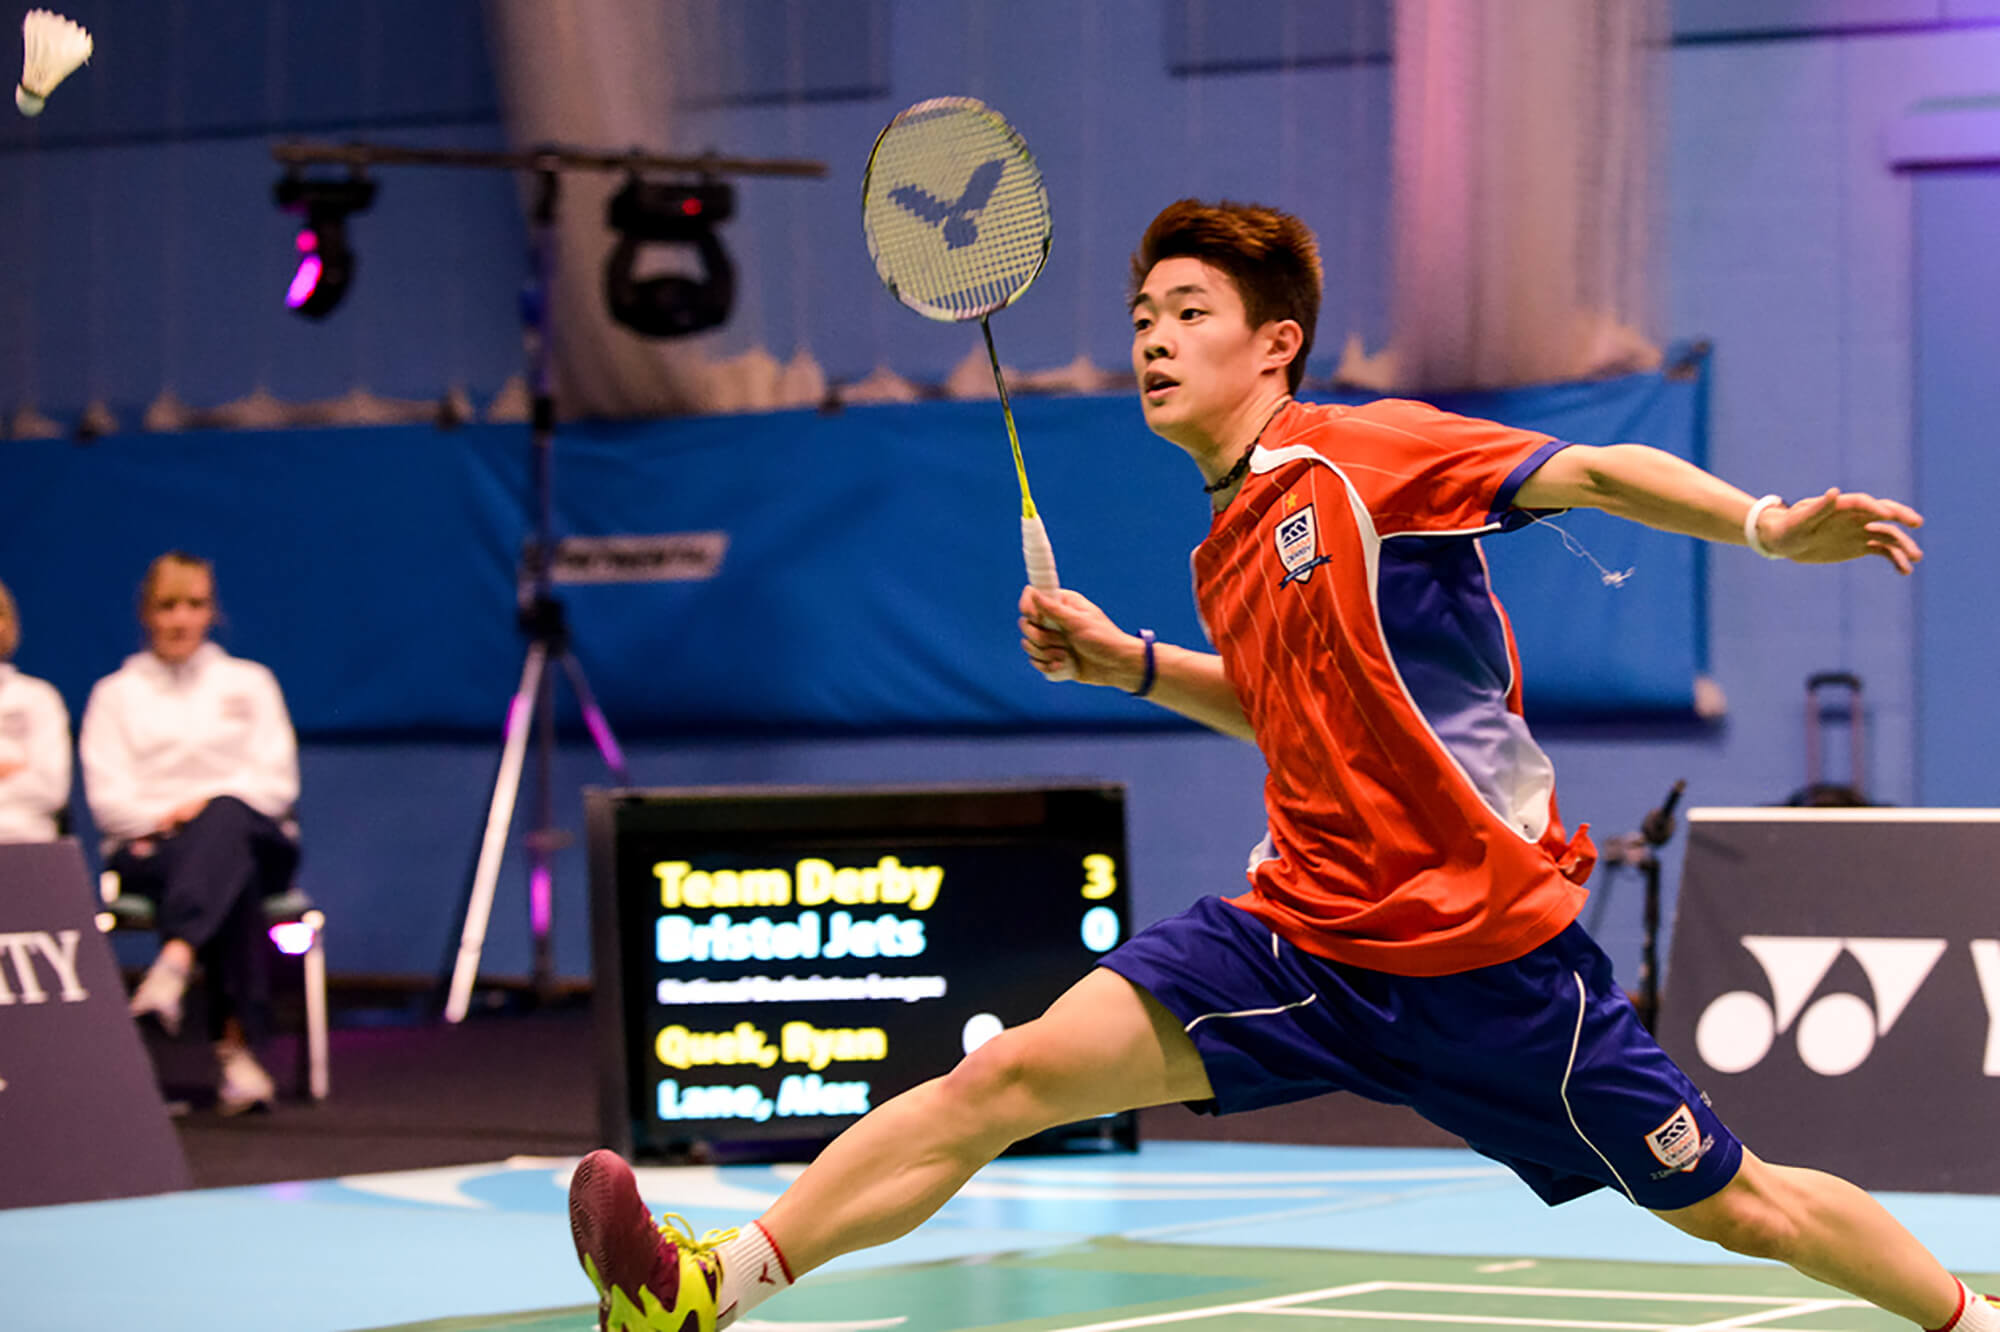 Team Derby in action in the National Badminton League